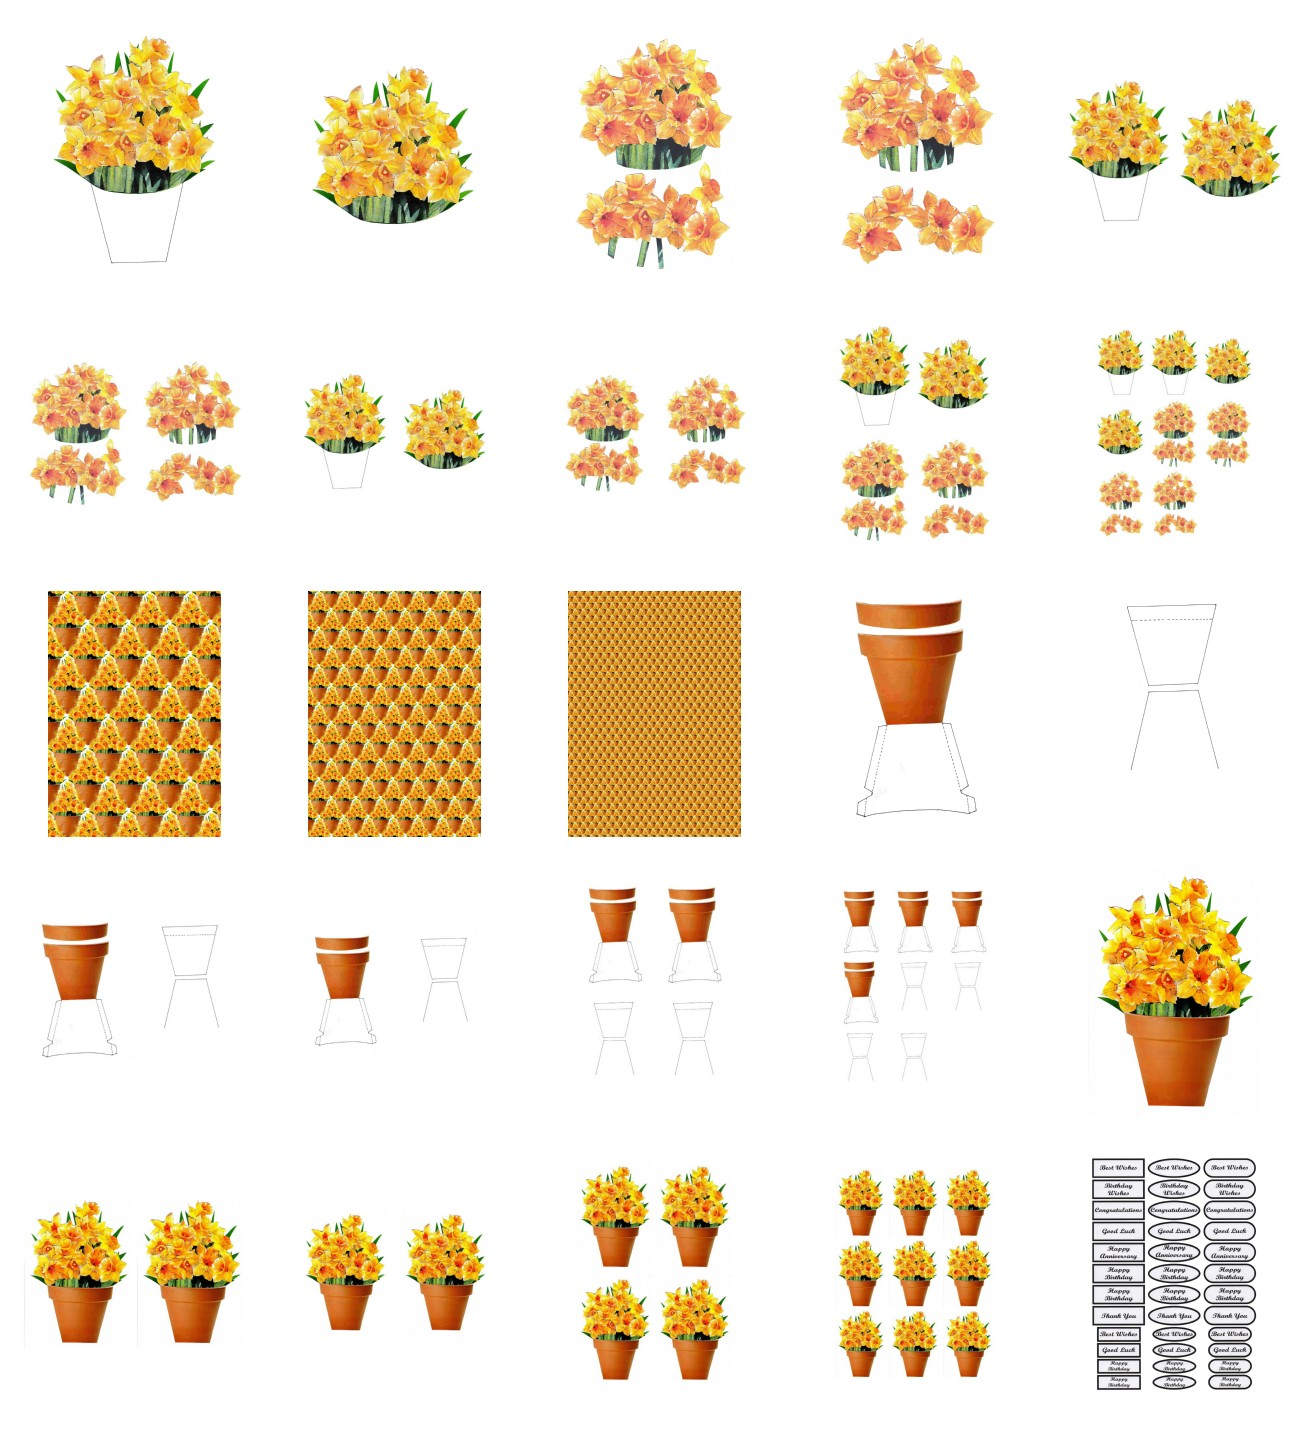 Spring Daffodil Set 01 Flowers - 25 Pages to Download